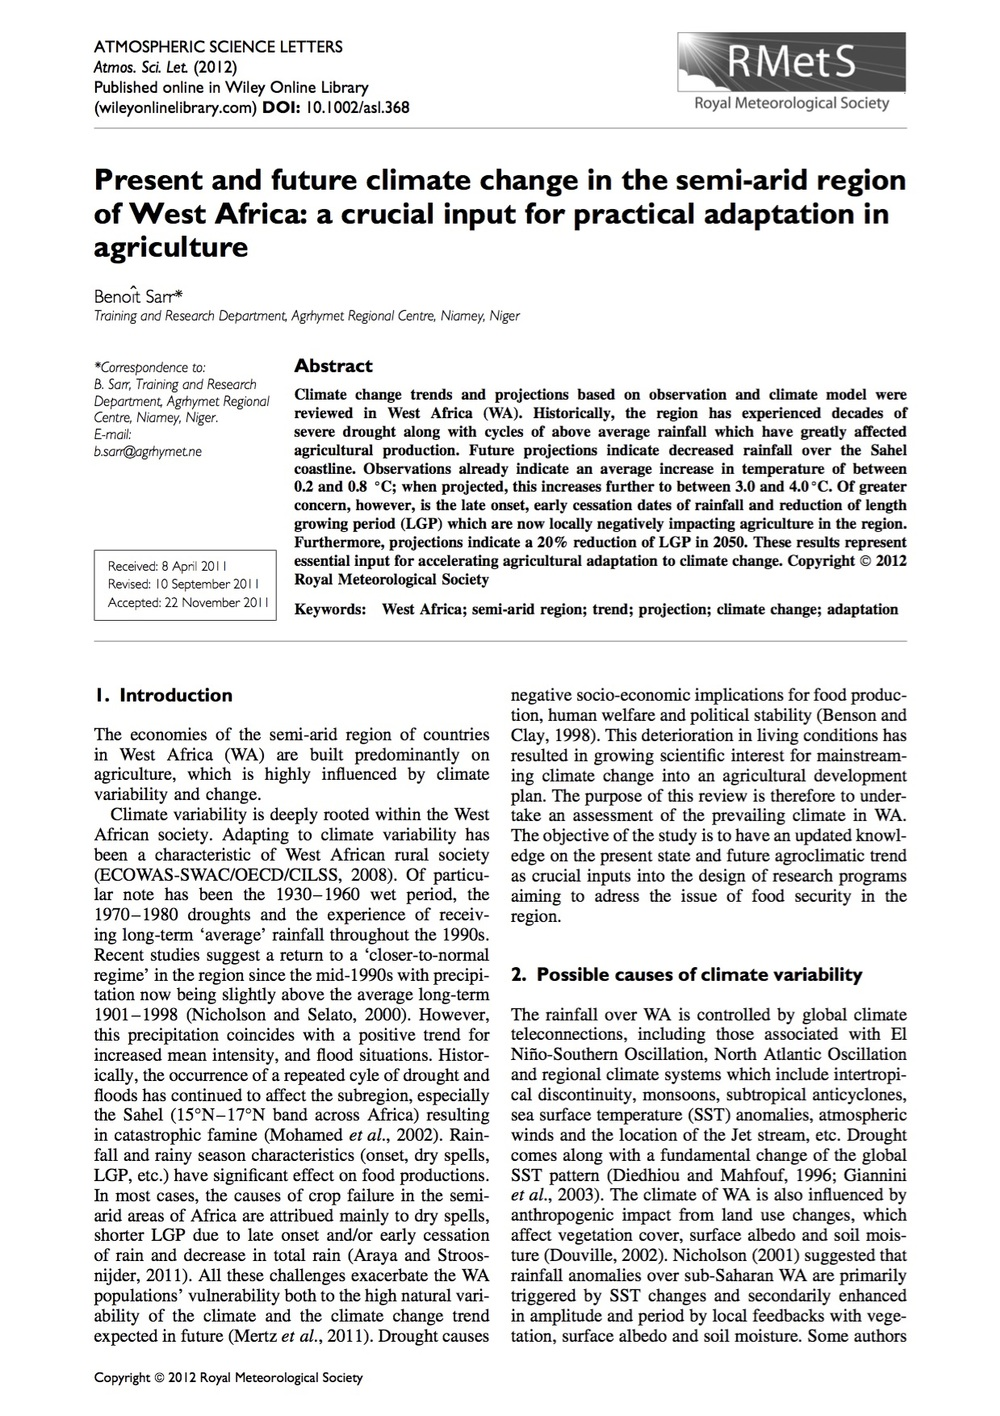 Present and future climate change in the semi-arid region of West Africa: a crucial input for practical adaptation in agriculture